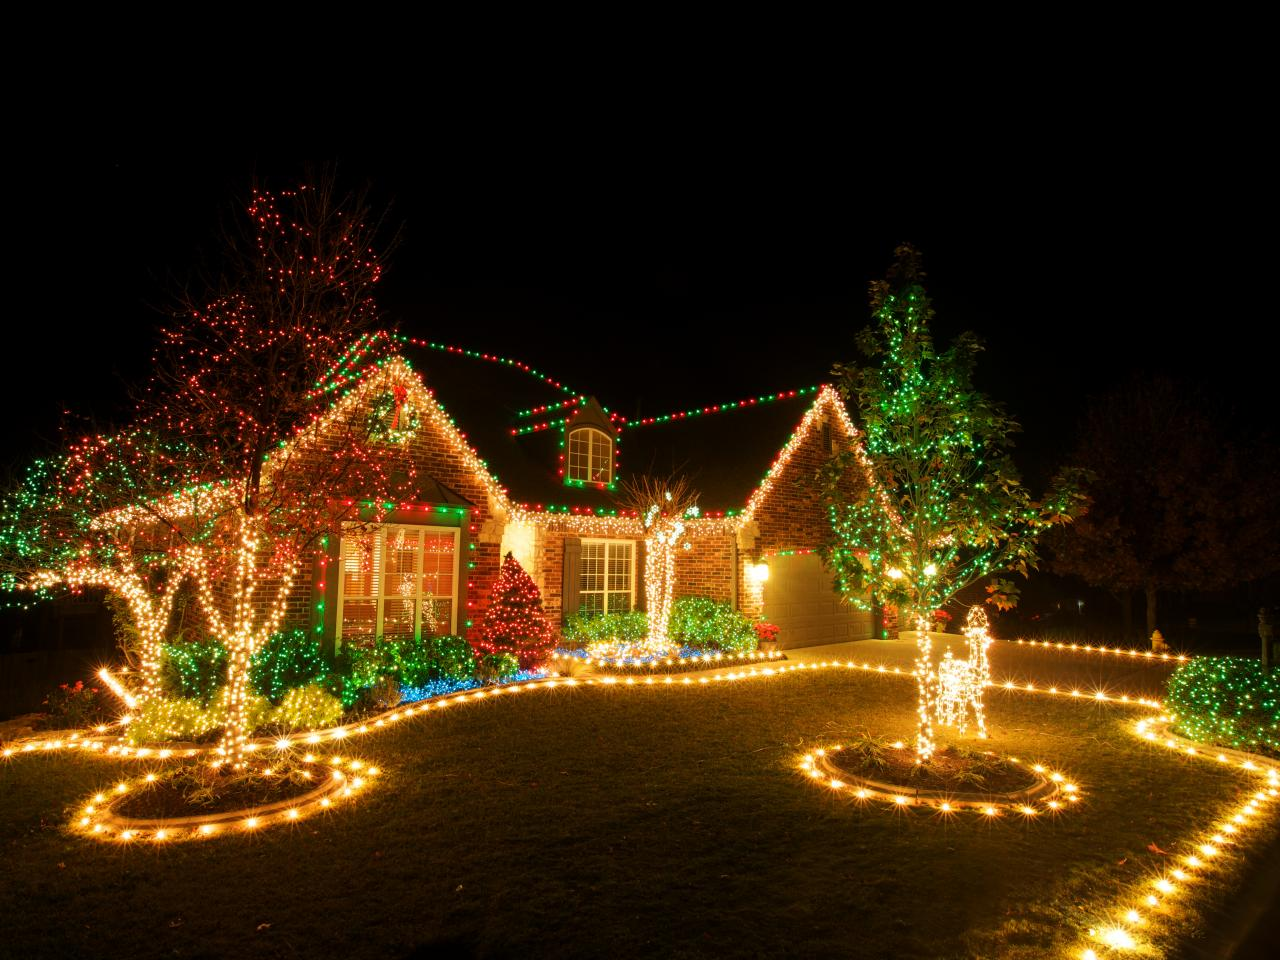 c9-outdoor-christmas-lights-photo-10